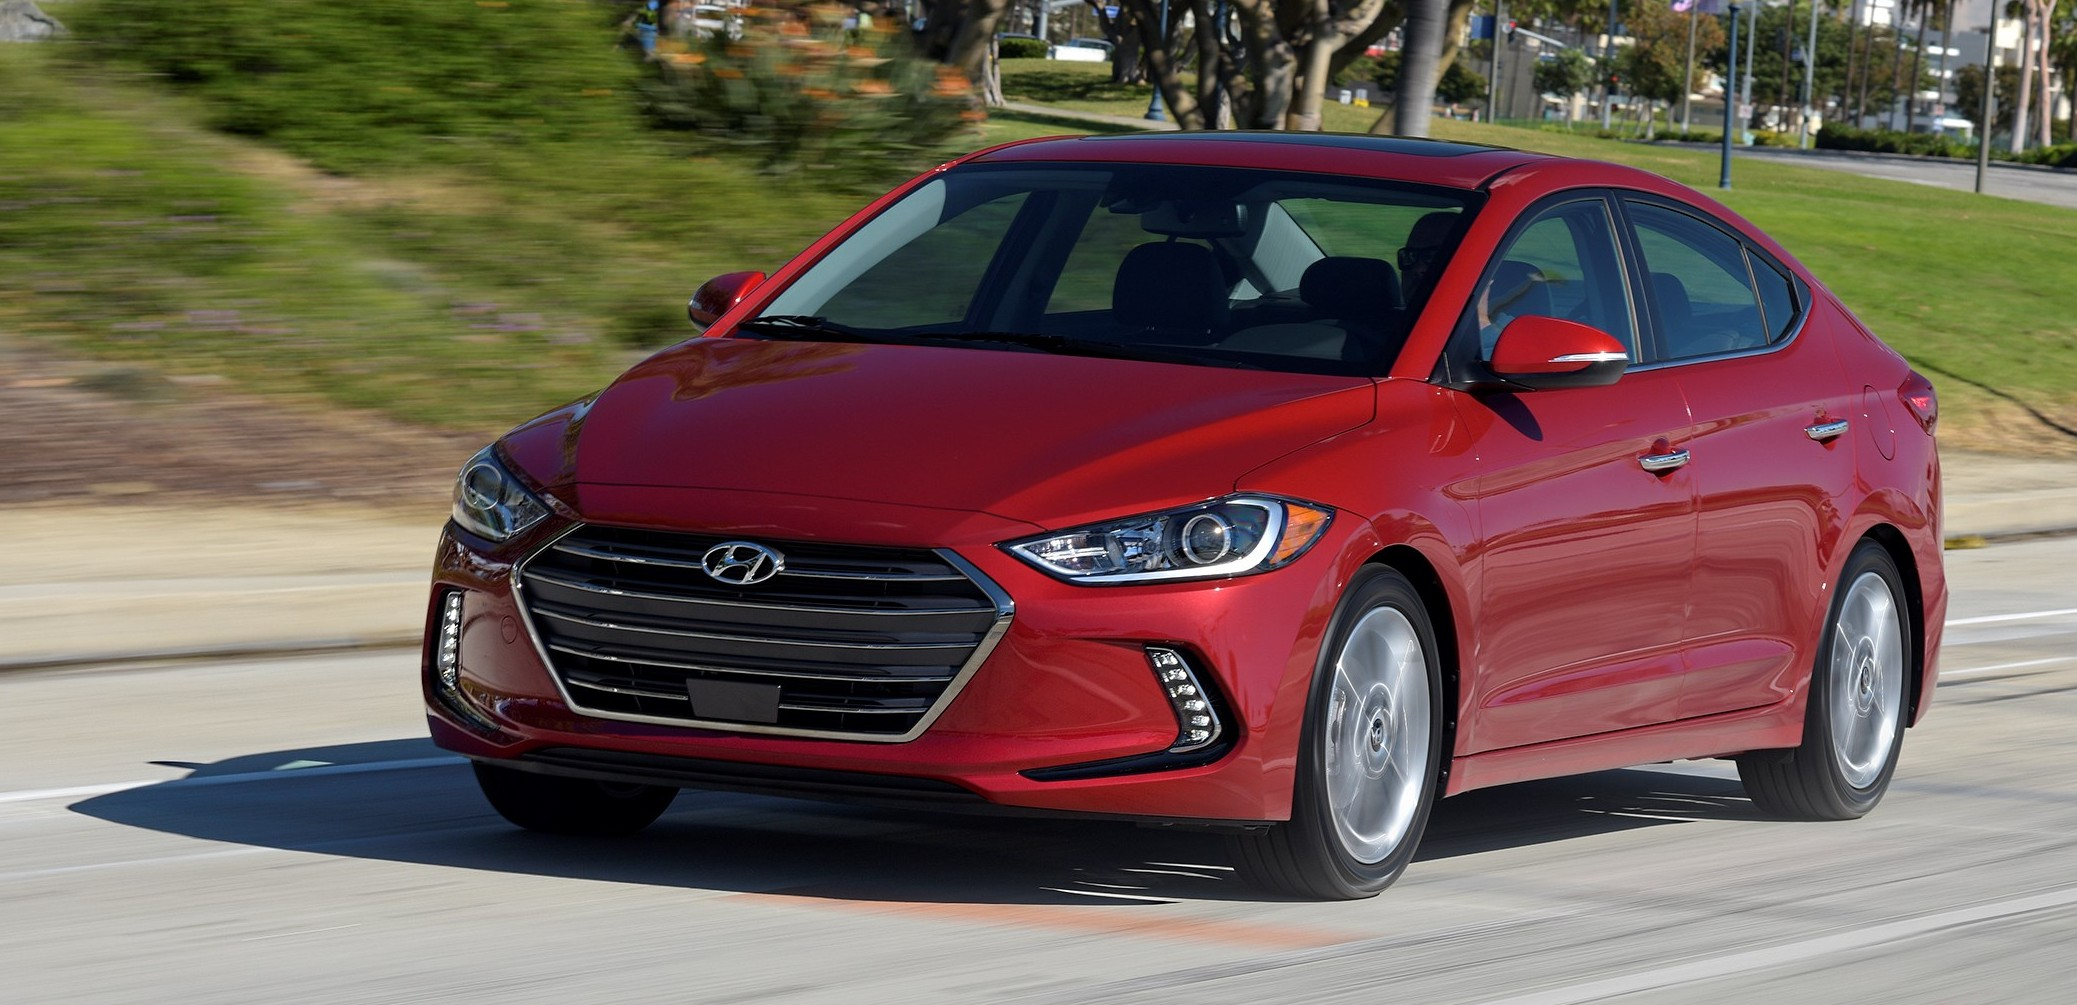 Hyundai Elantra Sedan >> 2017 Hyundai Elantra gets new 1.4 turbo, 7-speed DCT Image 409496